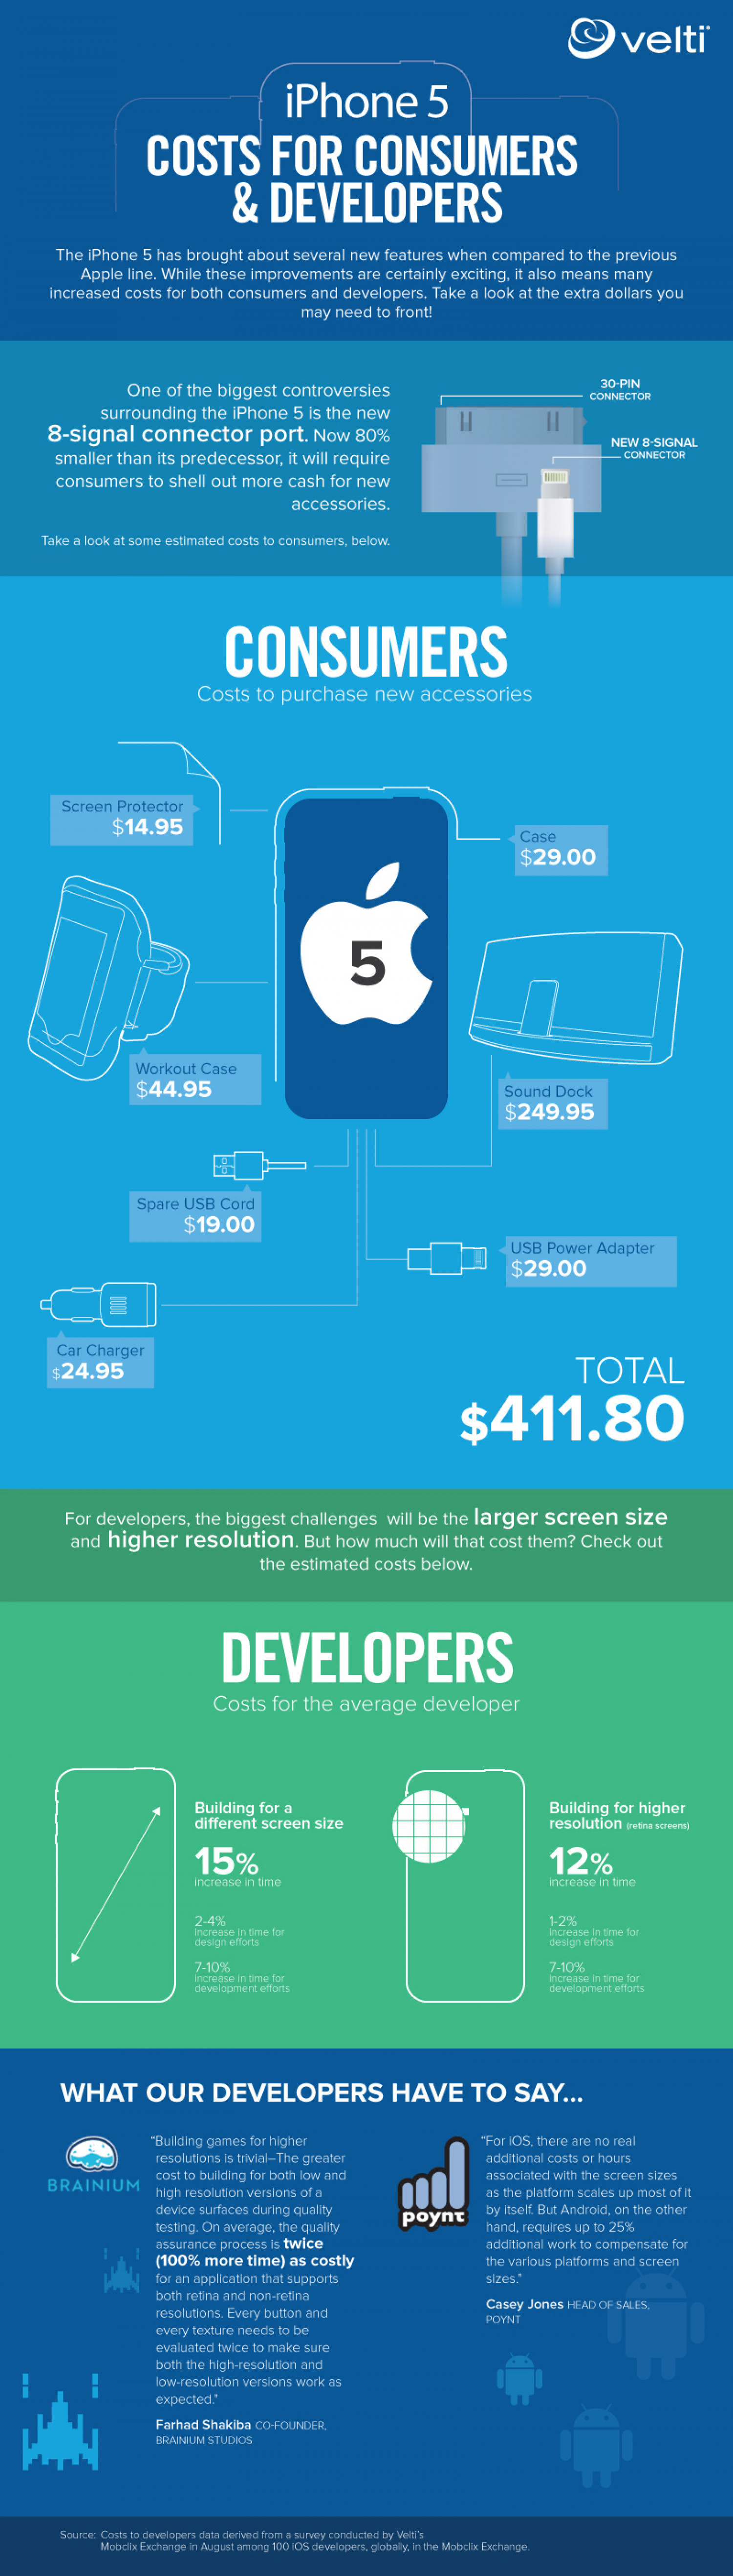 iPhone 5: Costs for Consumers & Developers Infographic